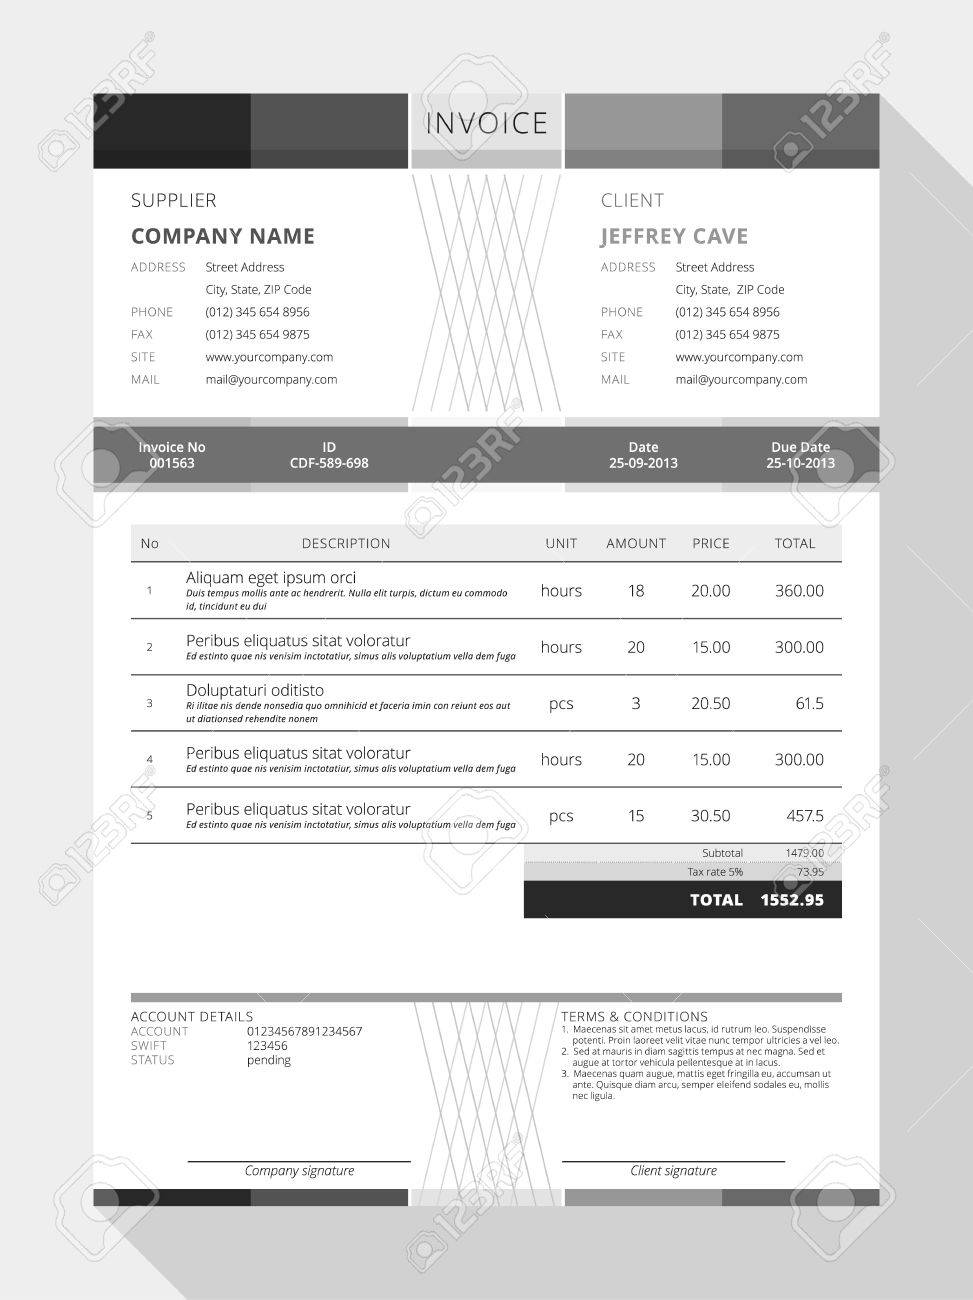 Carsforlessus  Ravishing Design An Invoice  Professional Graphic Design Invoice  With Lovely Vector Customizable Invoice Form Template Design Vector   Design An Invoice With Endearing What To Write On An Invoice Also Invoice Receivables In Addition Free Invoice Design And Invoices Pdf As Well As Proforma Invoice Download Additionally Express Invoice Free Version From Happytomco With Carsforlessus  Lovely Design An Invoice  Professional Graphic Design Invoice  With Endearing Vector Customizable Invoice Form Template Design Vector   Design An Invoice And Ravishing What To Write On An Invoice Also Invoice Receivables In Addition Free Invoice Design From Happytomco